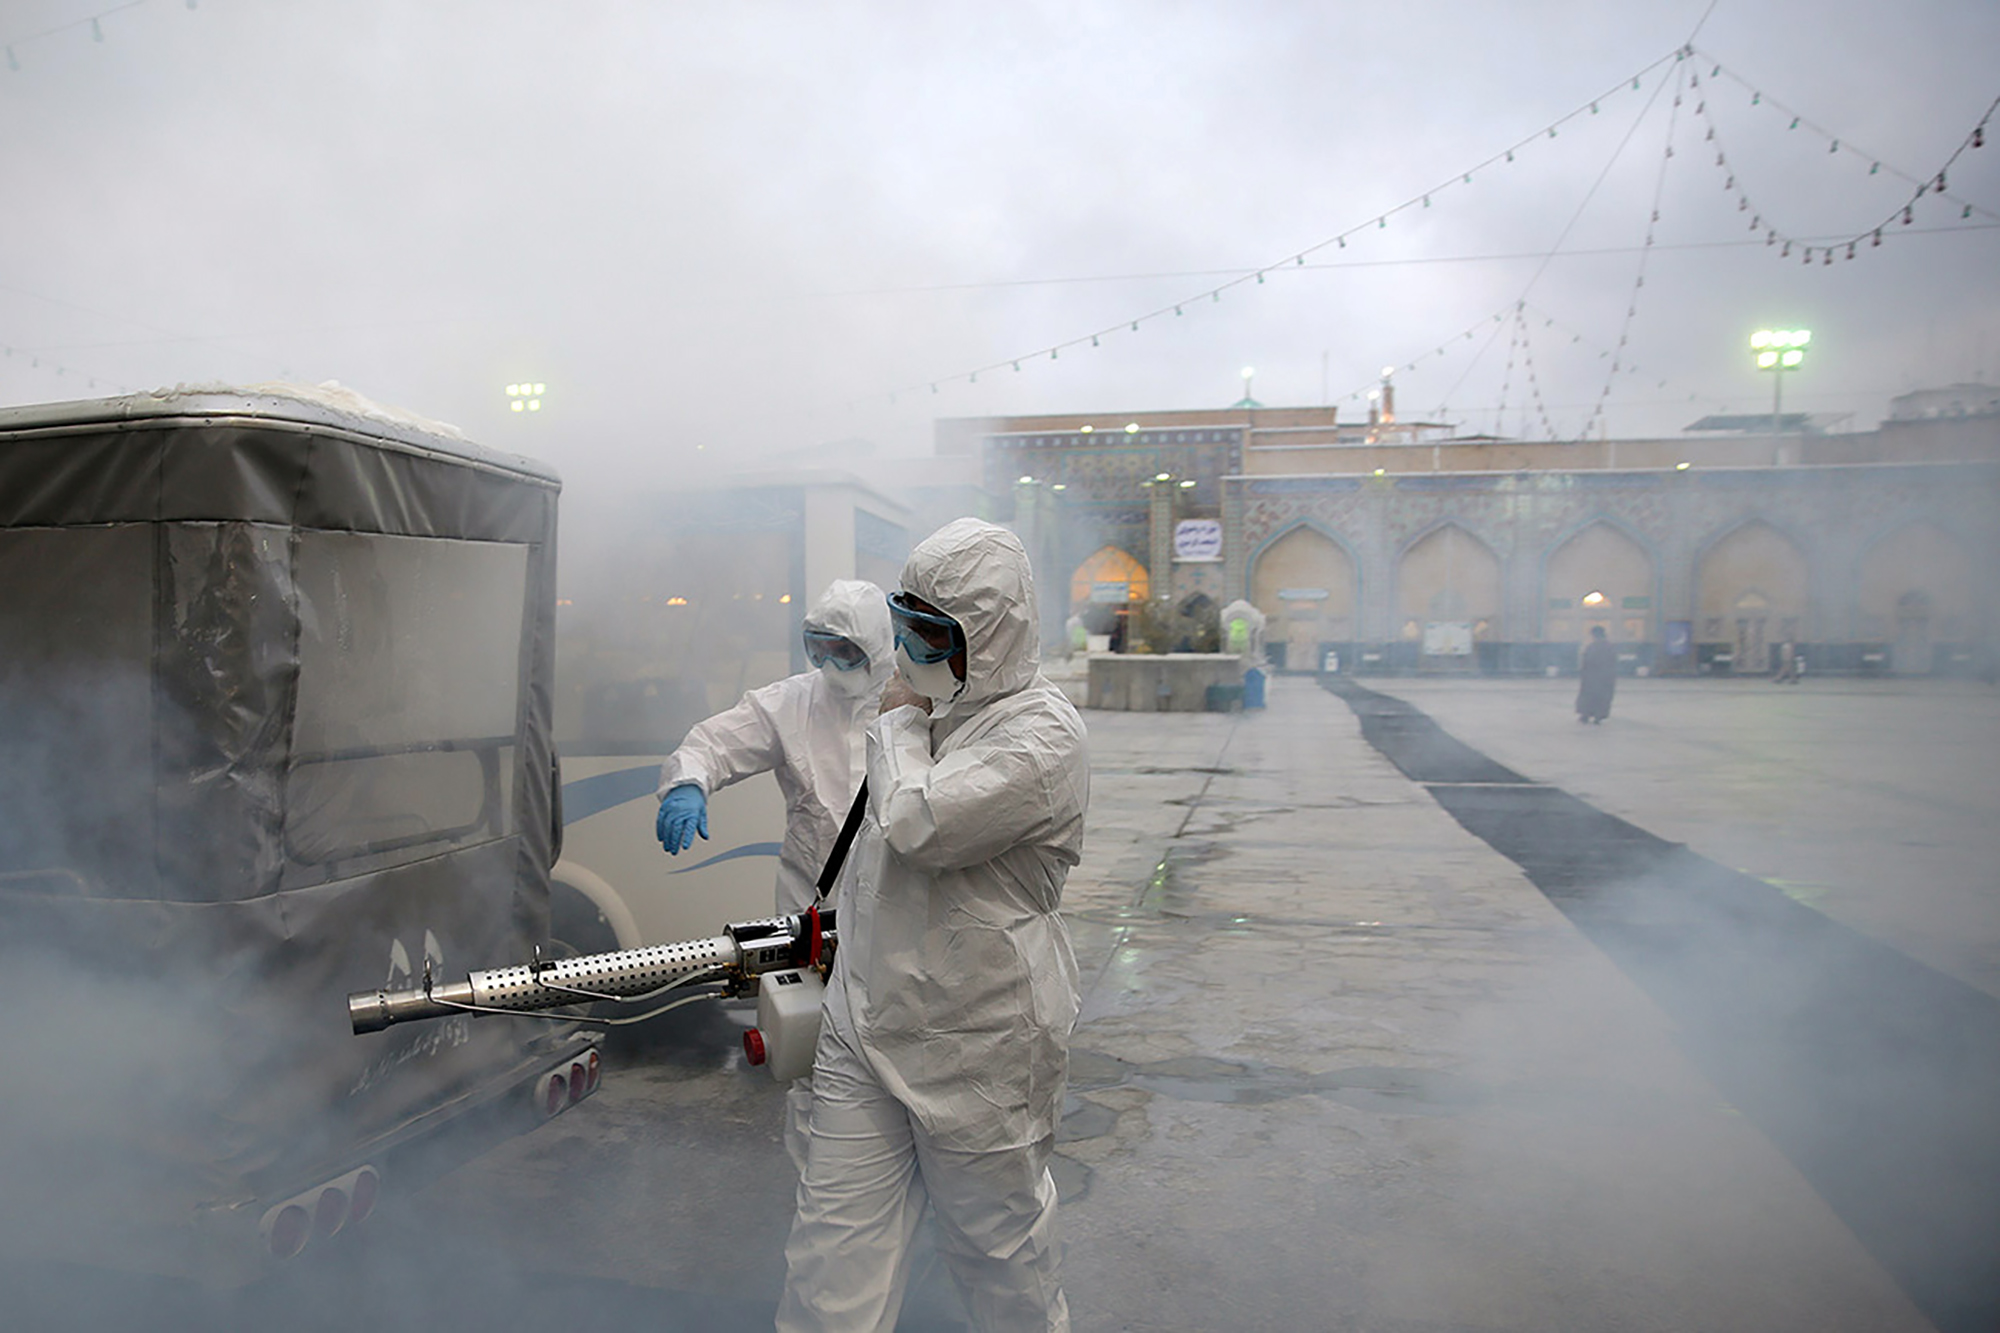 Members of a medical team spray disinfectant to sanitize around Imam Reza's holy shrine, following the coronavirus outbreak, in Mashhad, Iran February 27.